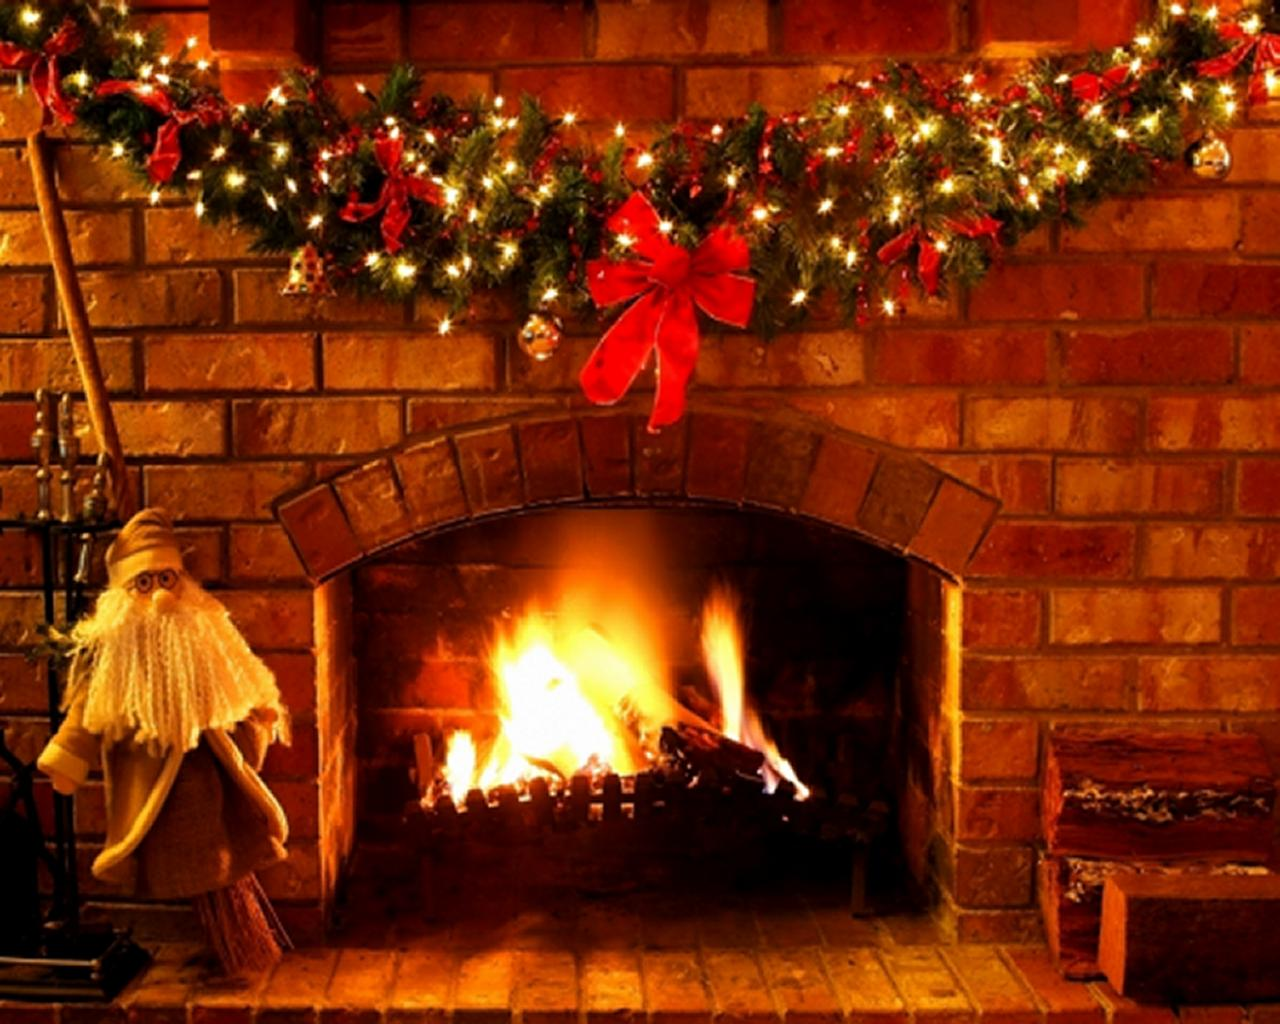 Fireplace Background Wallpapeers WIN10 THEMES 1280x1024